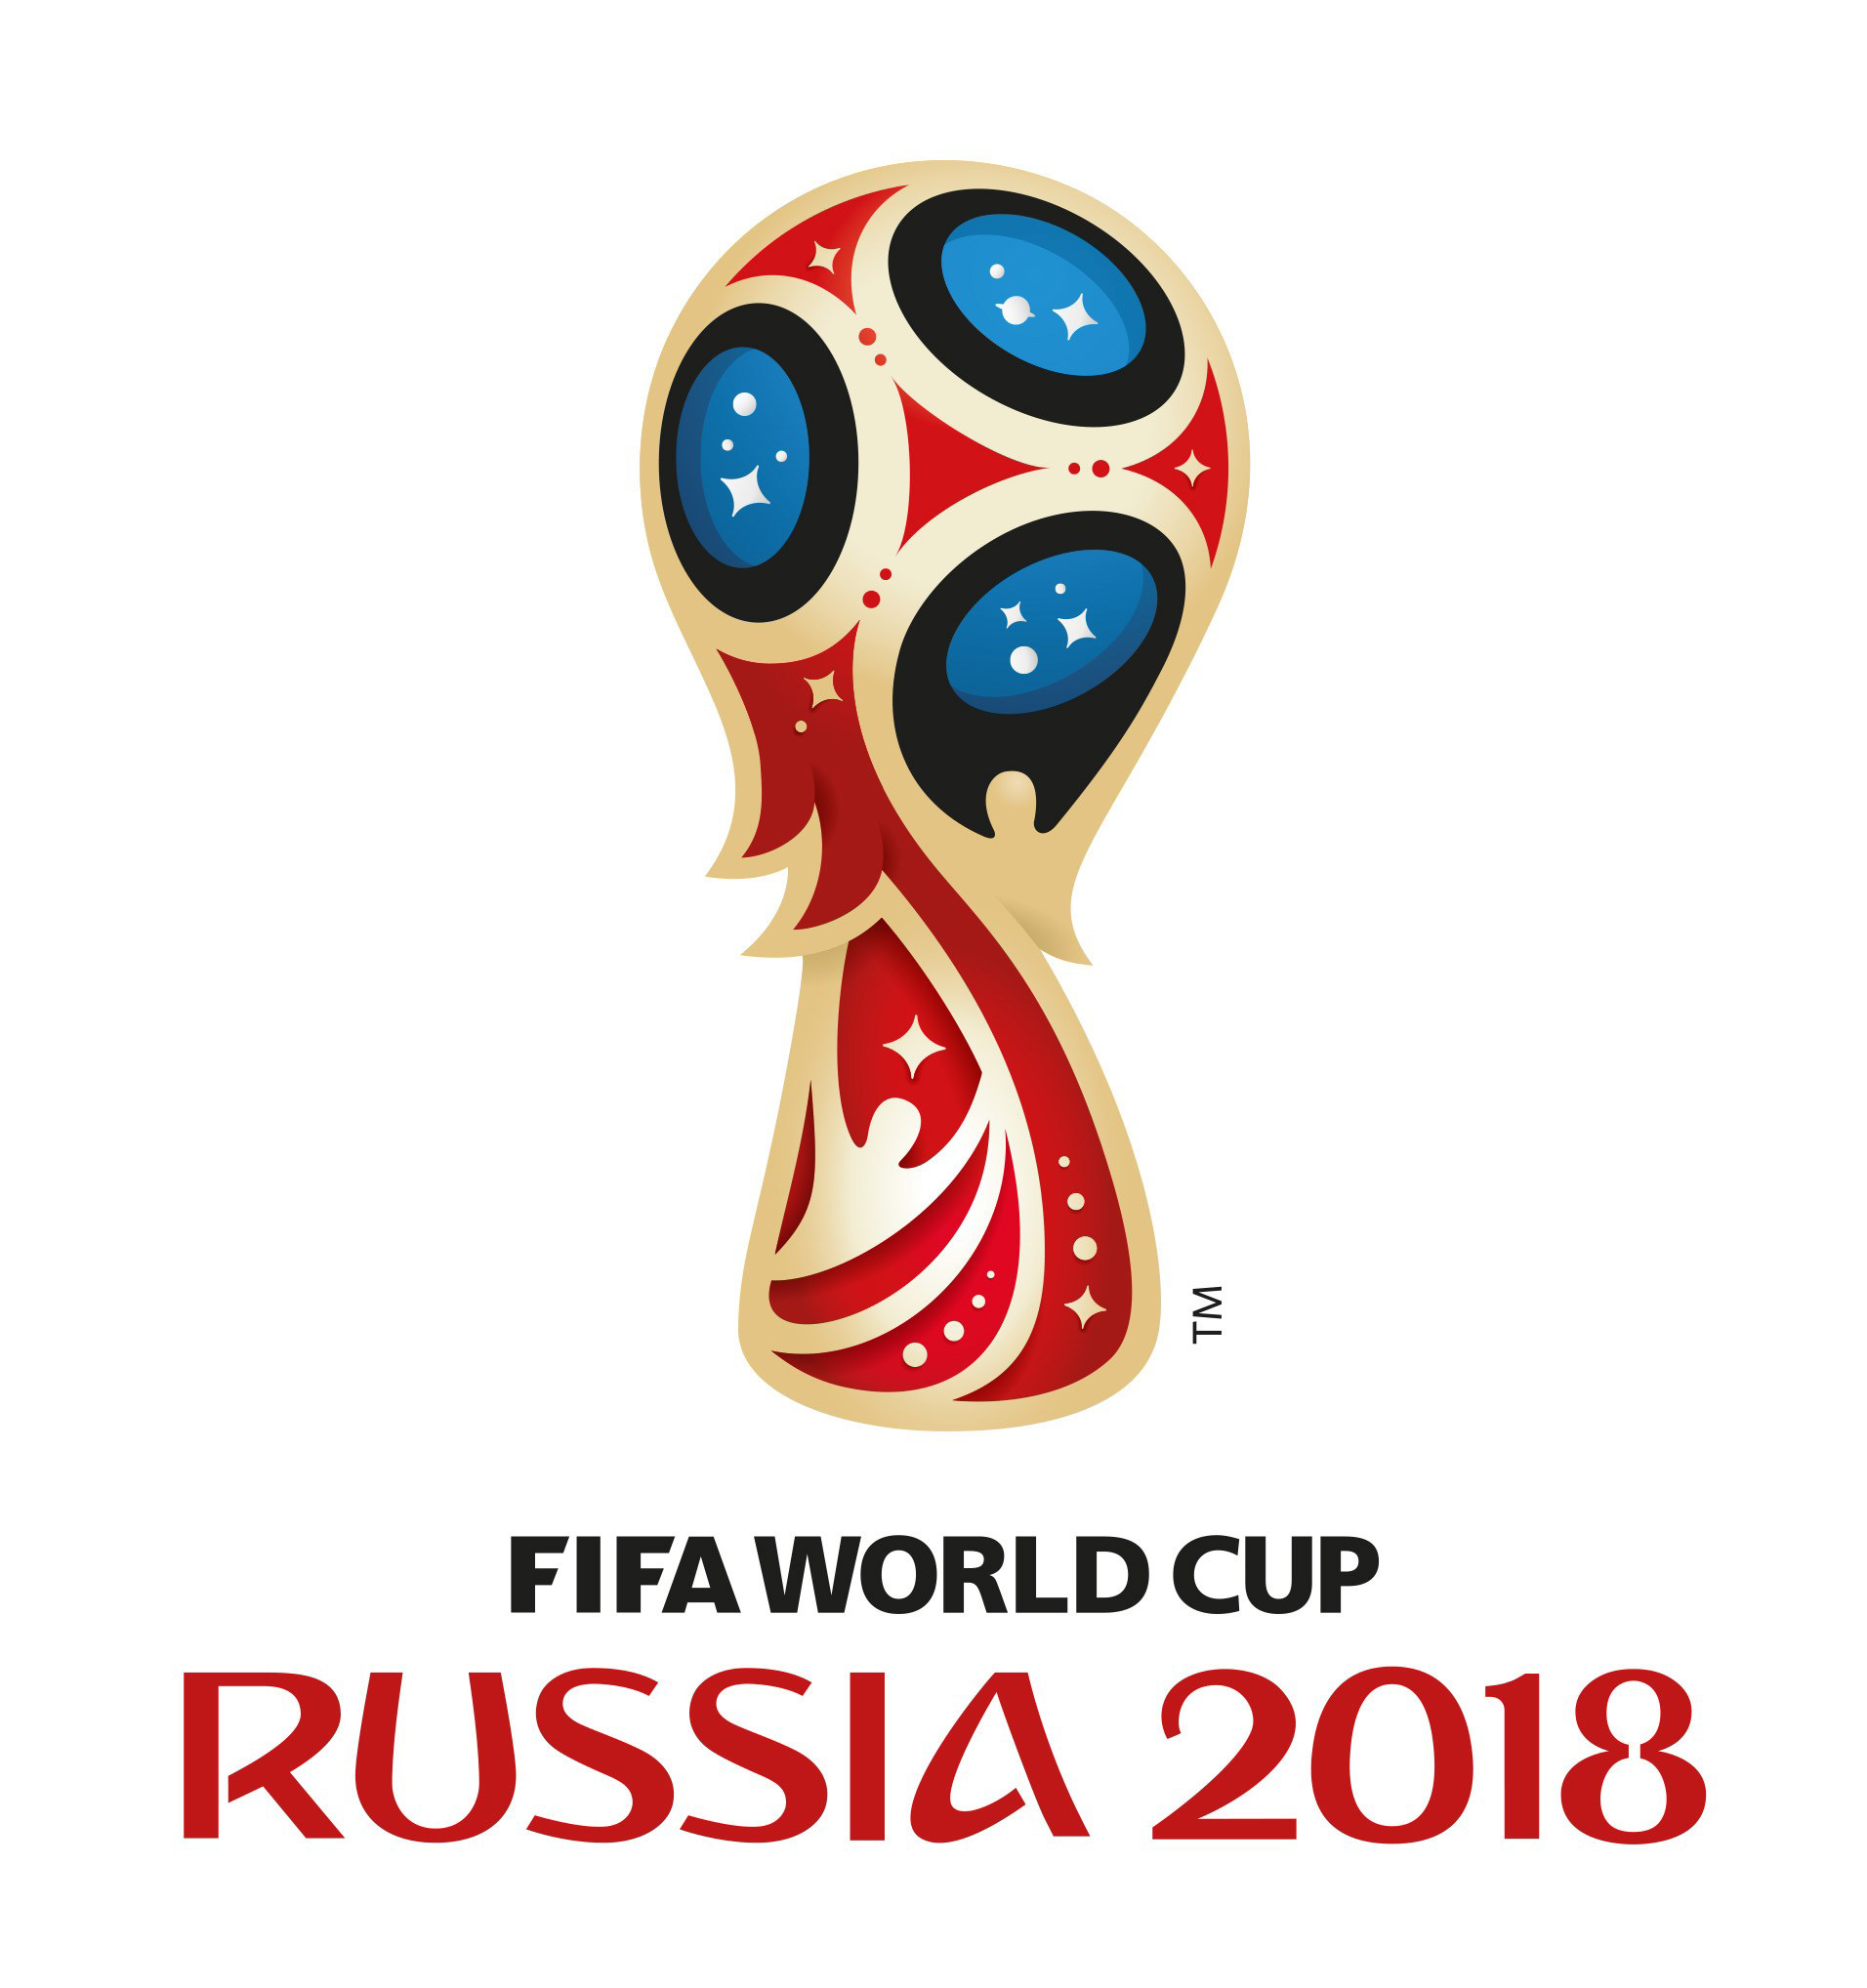 World-Cup-logo